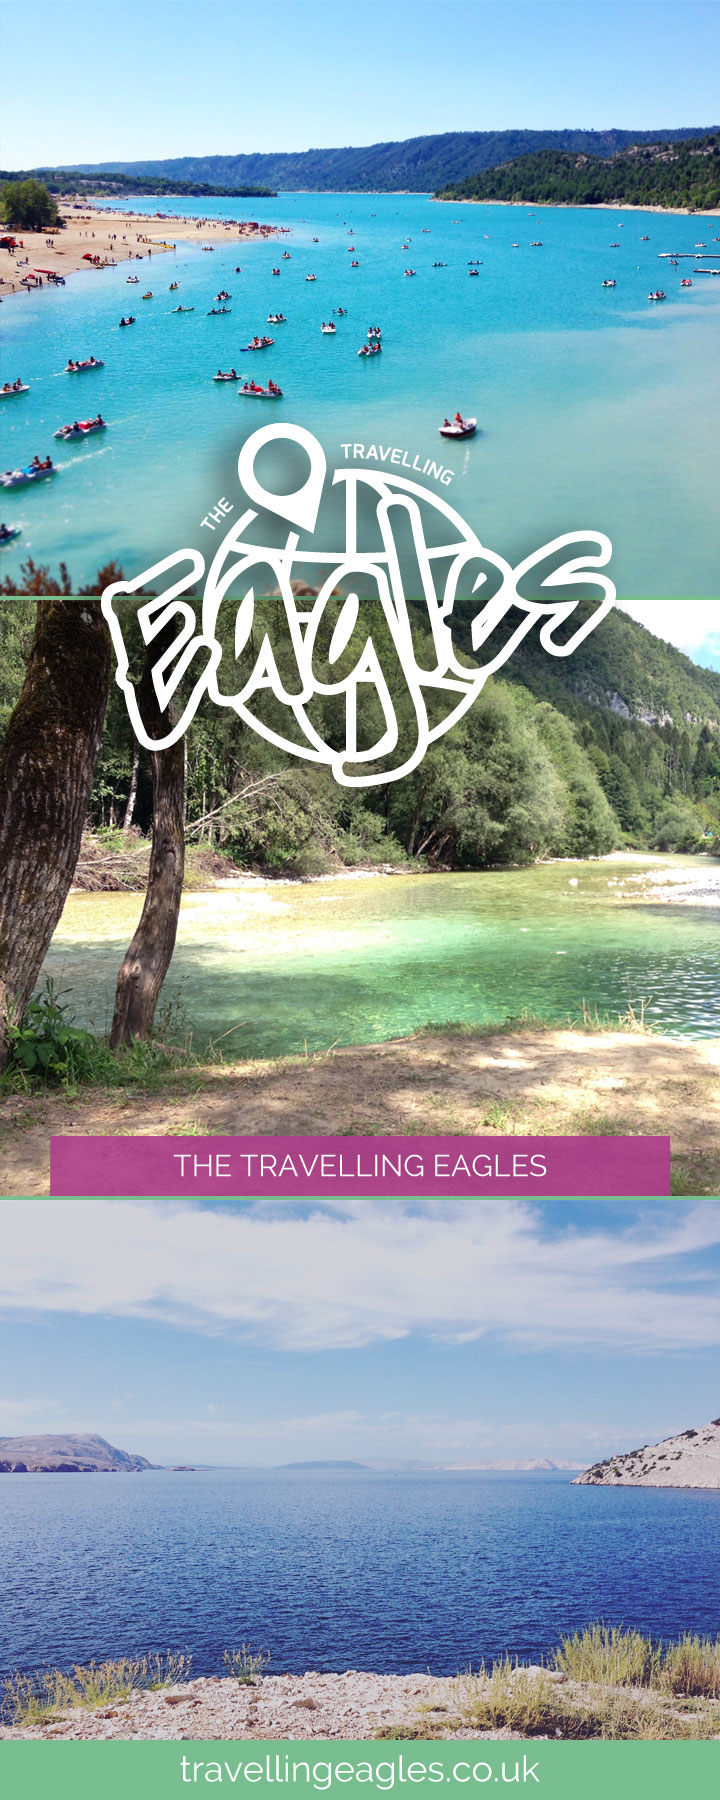 Blog - The Travelling Eagles